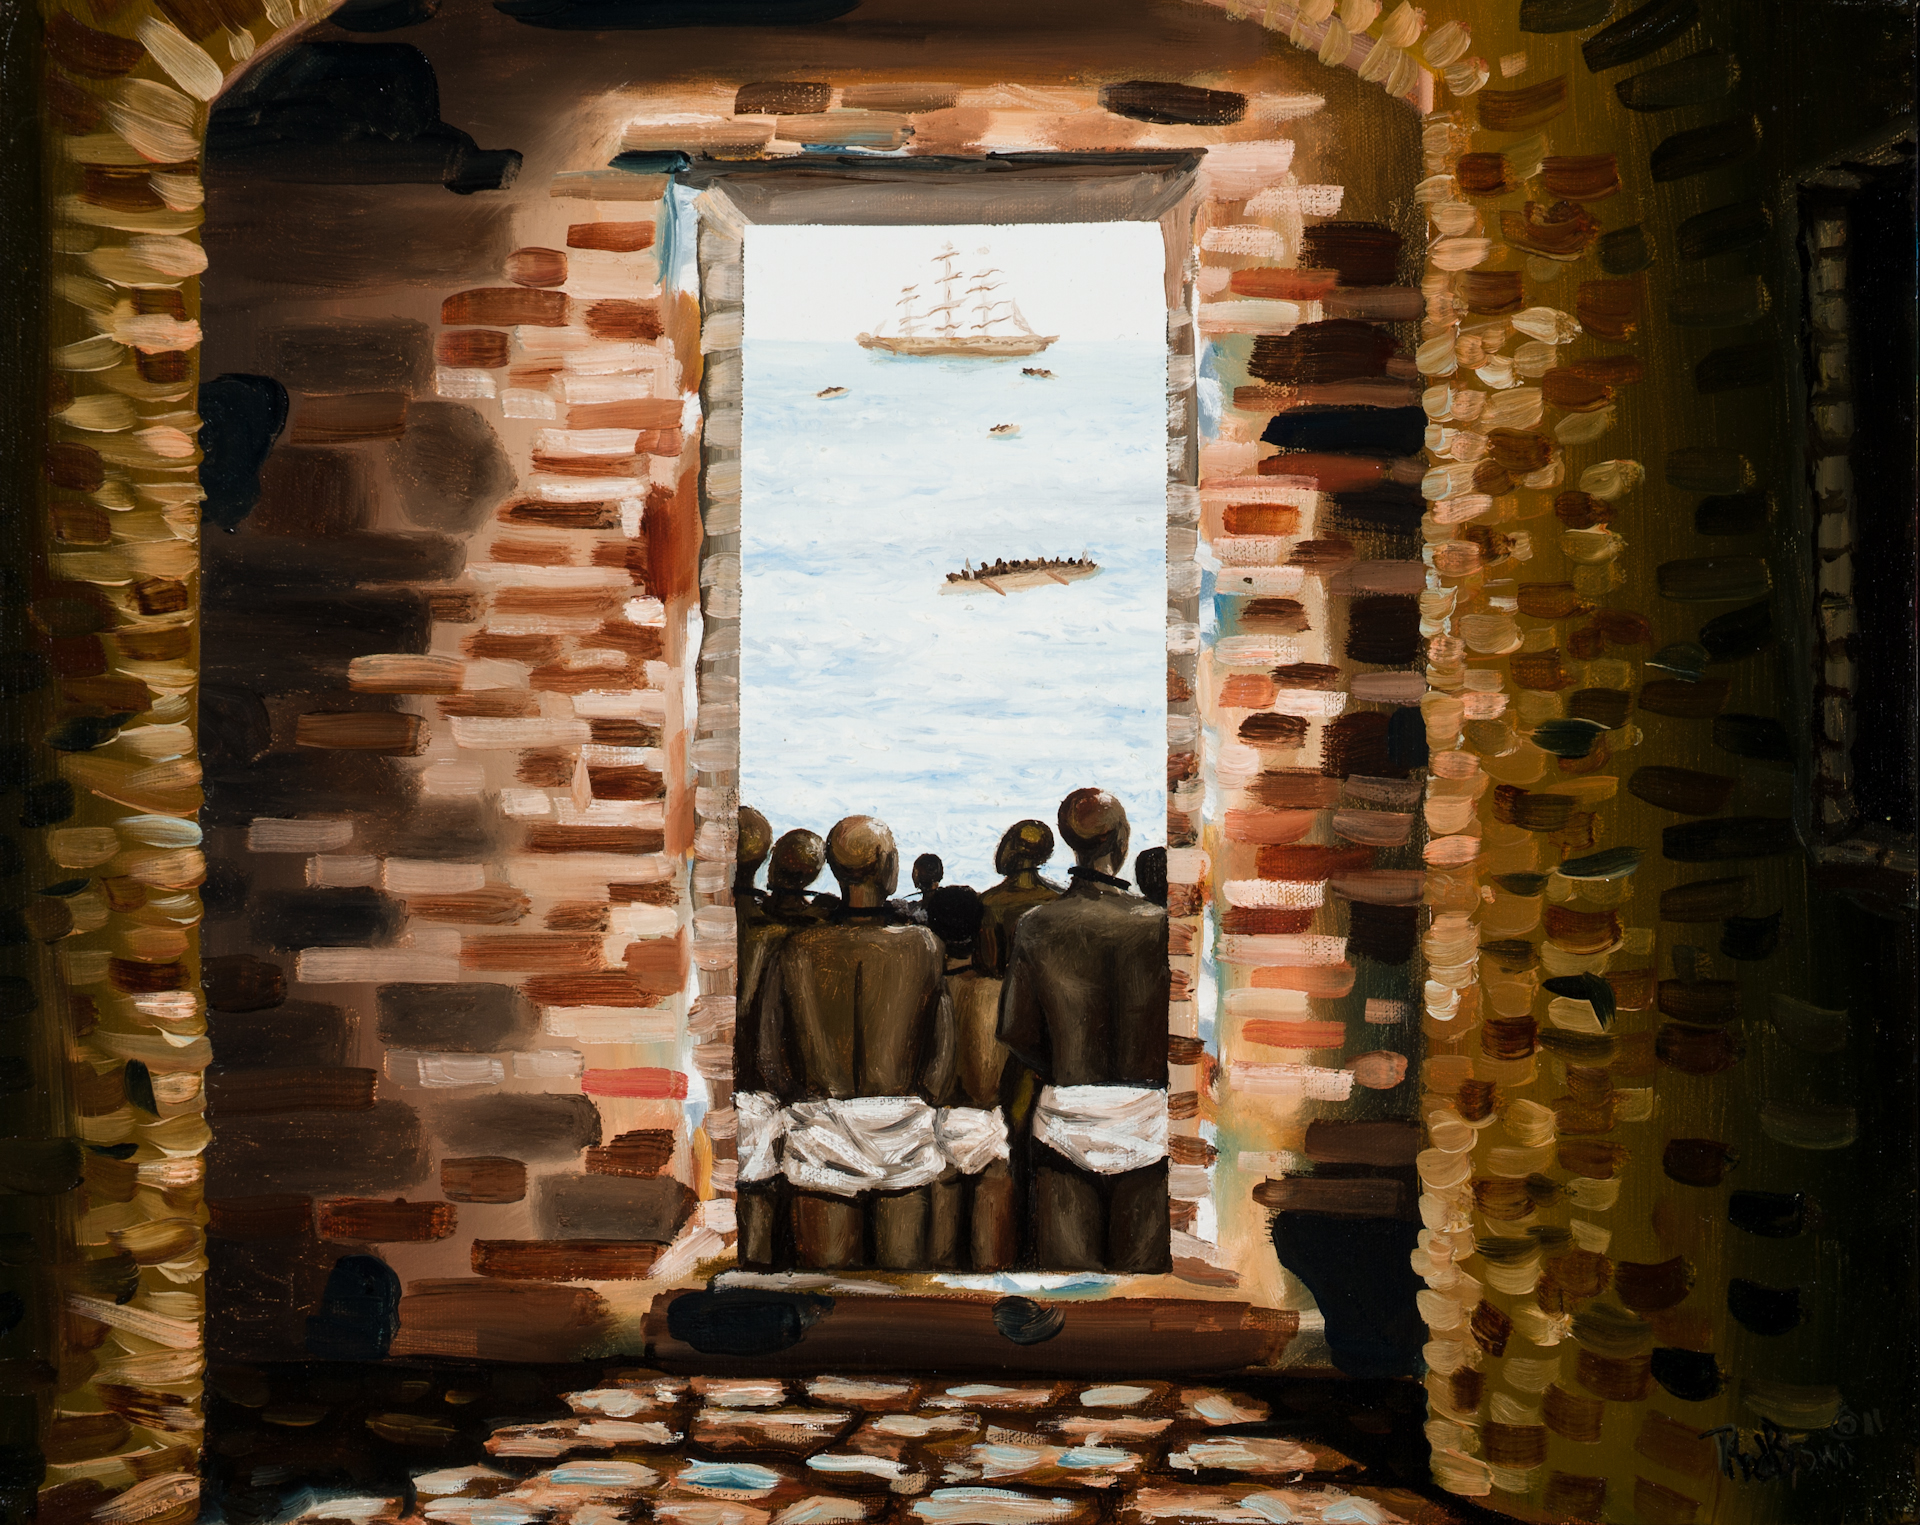 The Door of No Return © Rod Brown, used with permission of the artist.